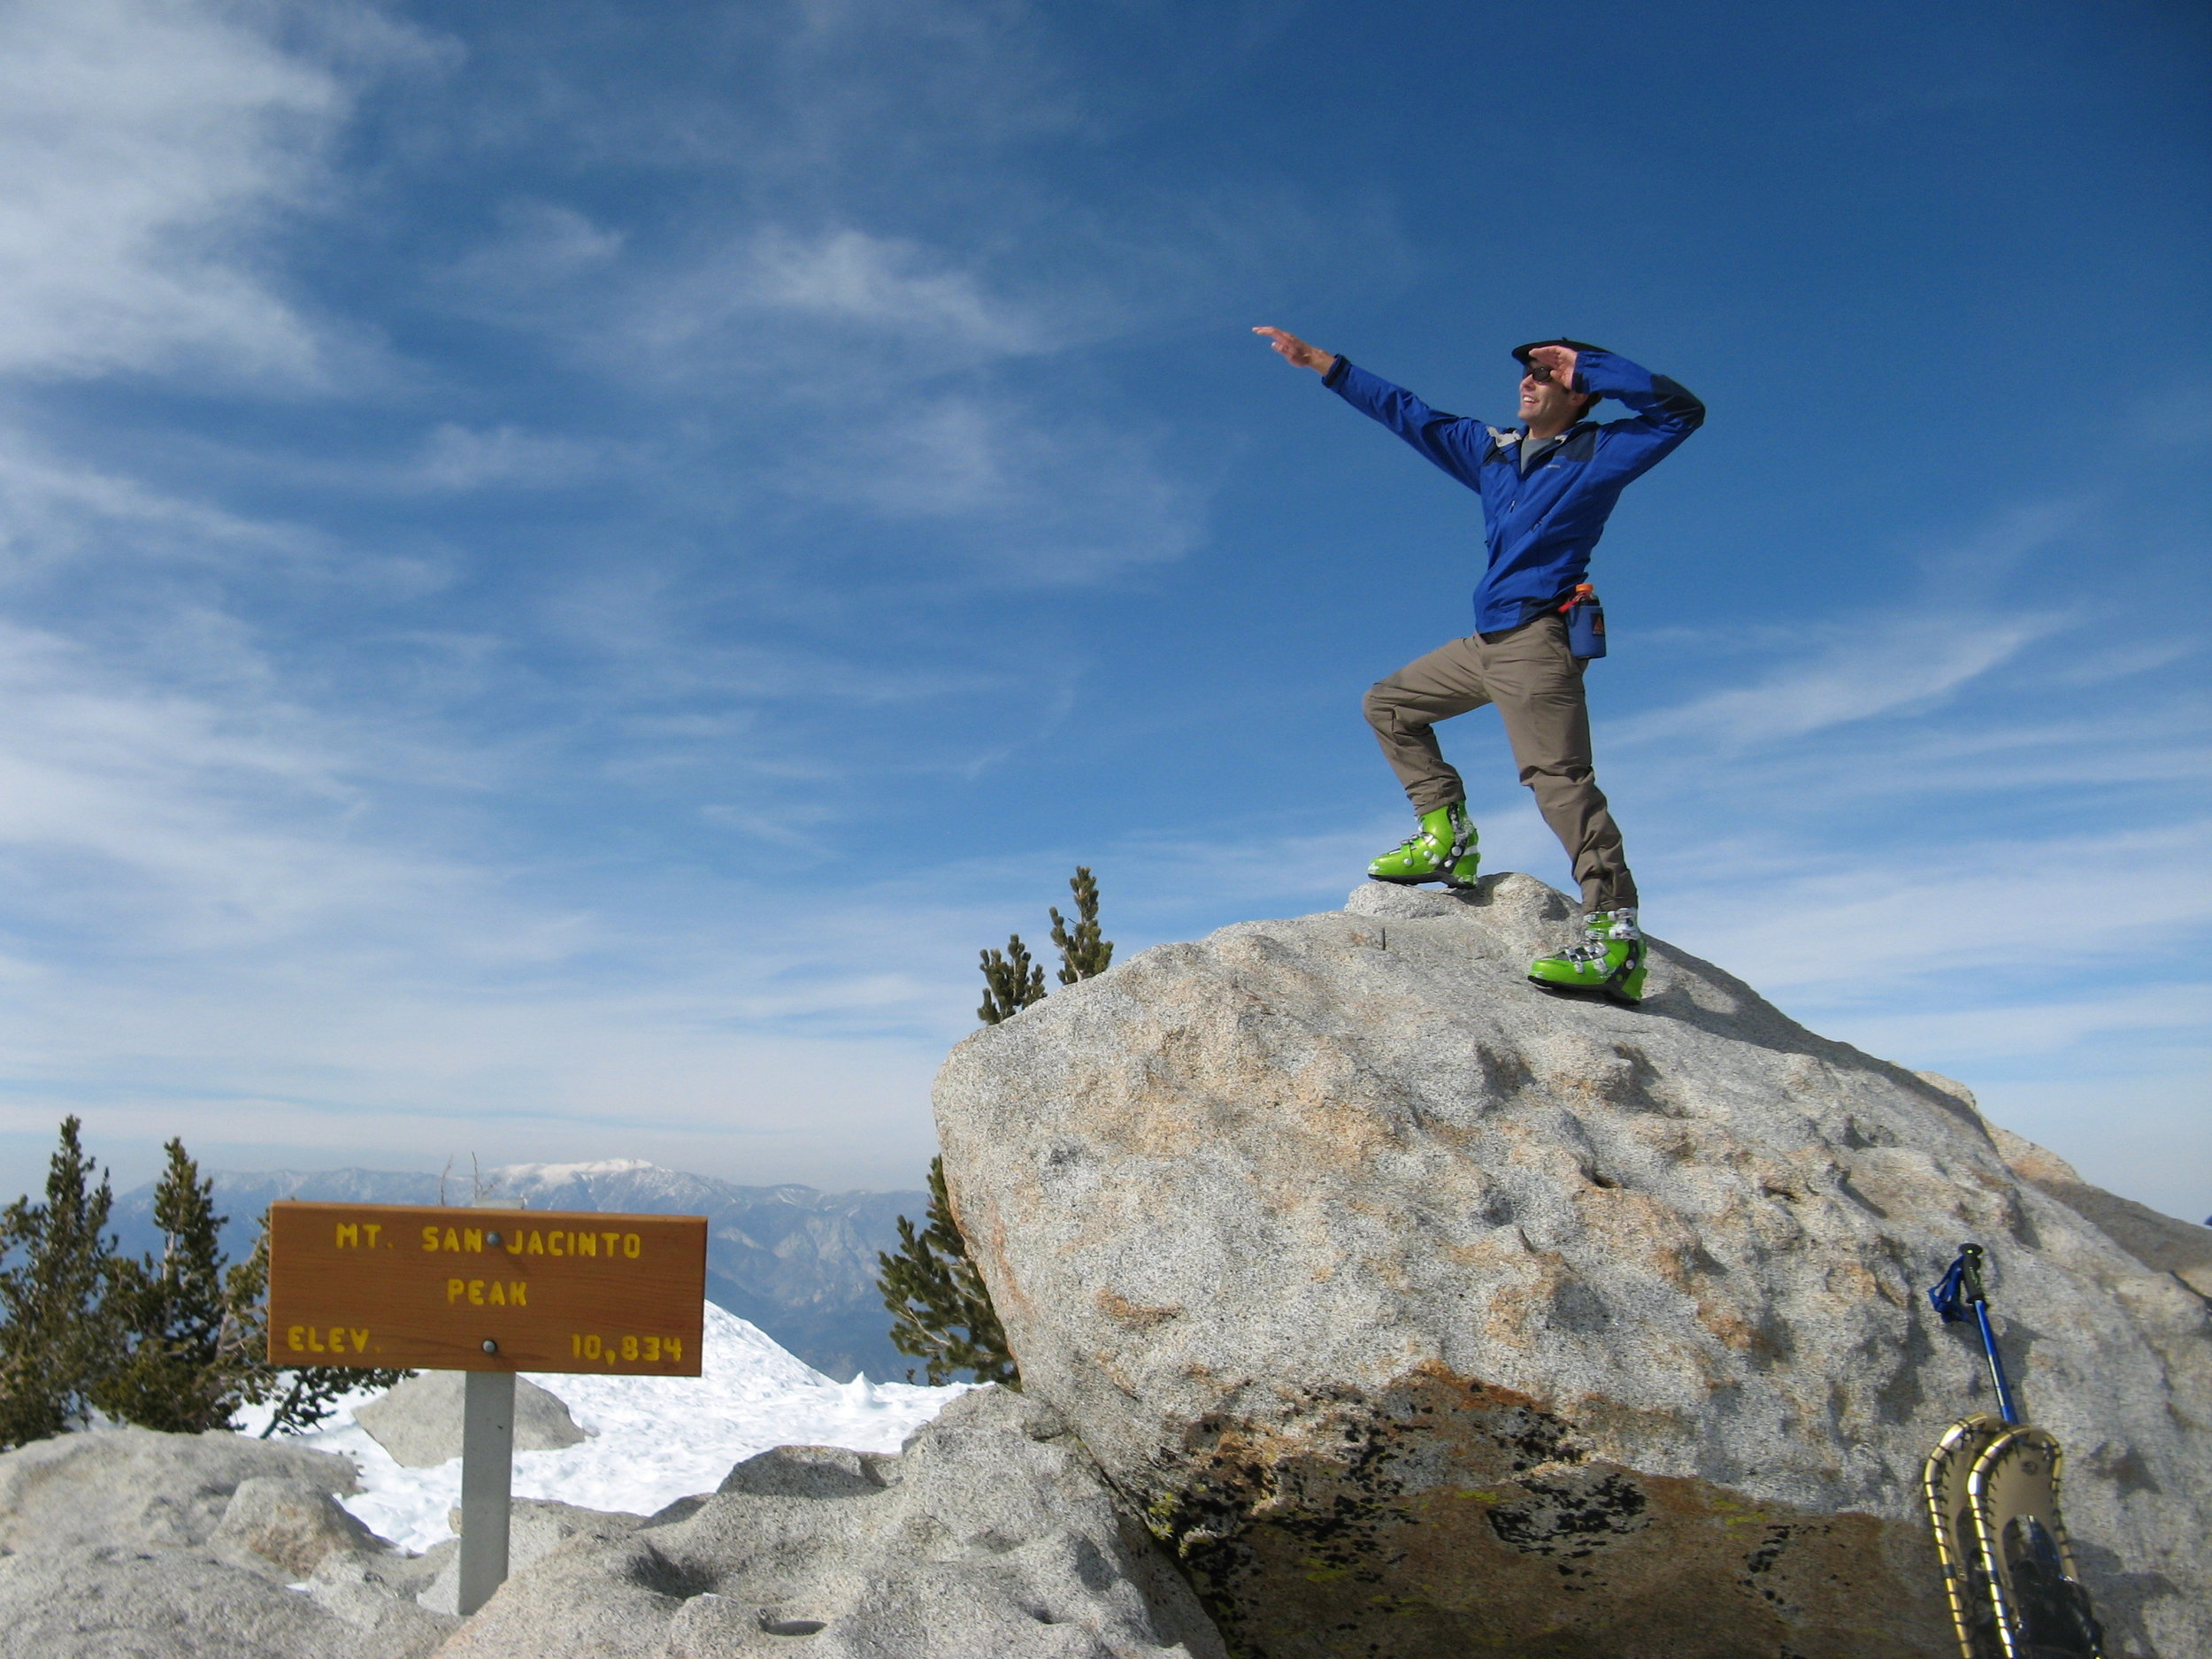 Making the pose on the summit of San Jacinto - now time to turn around and ski back down...